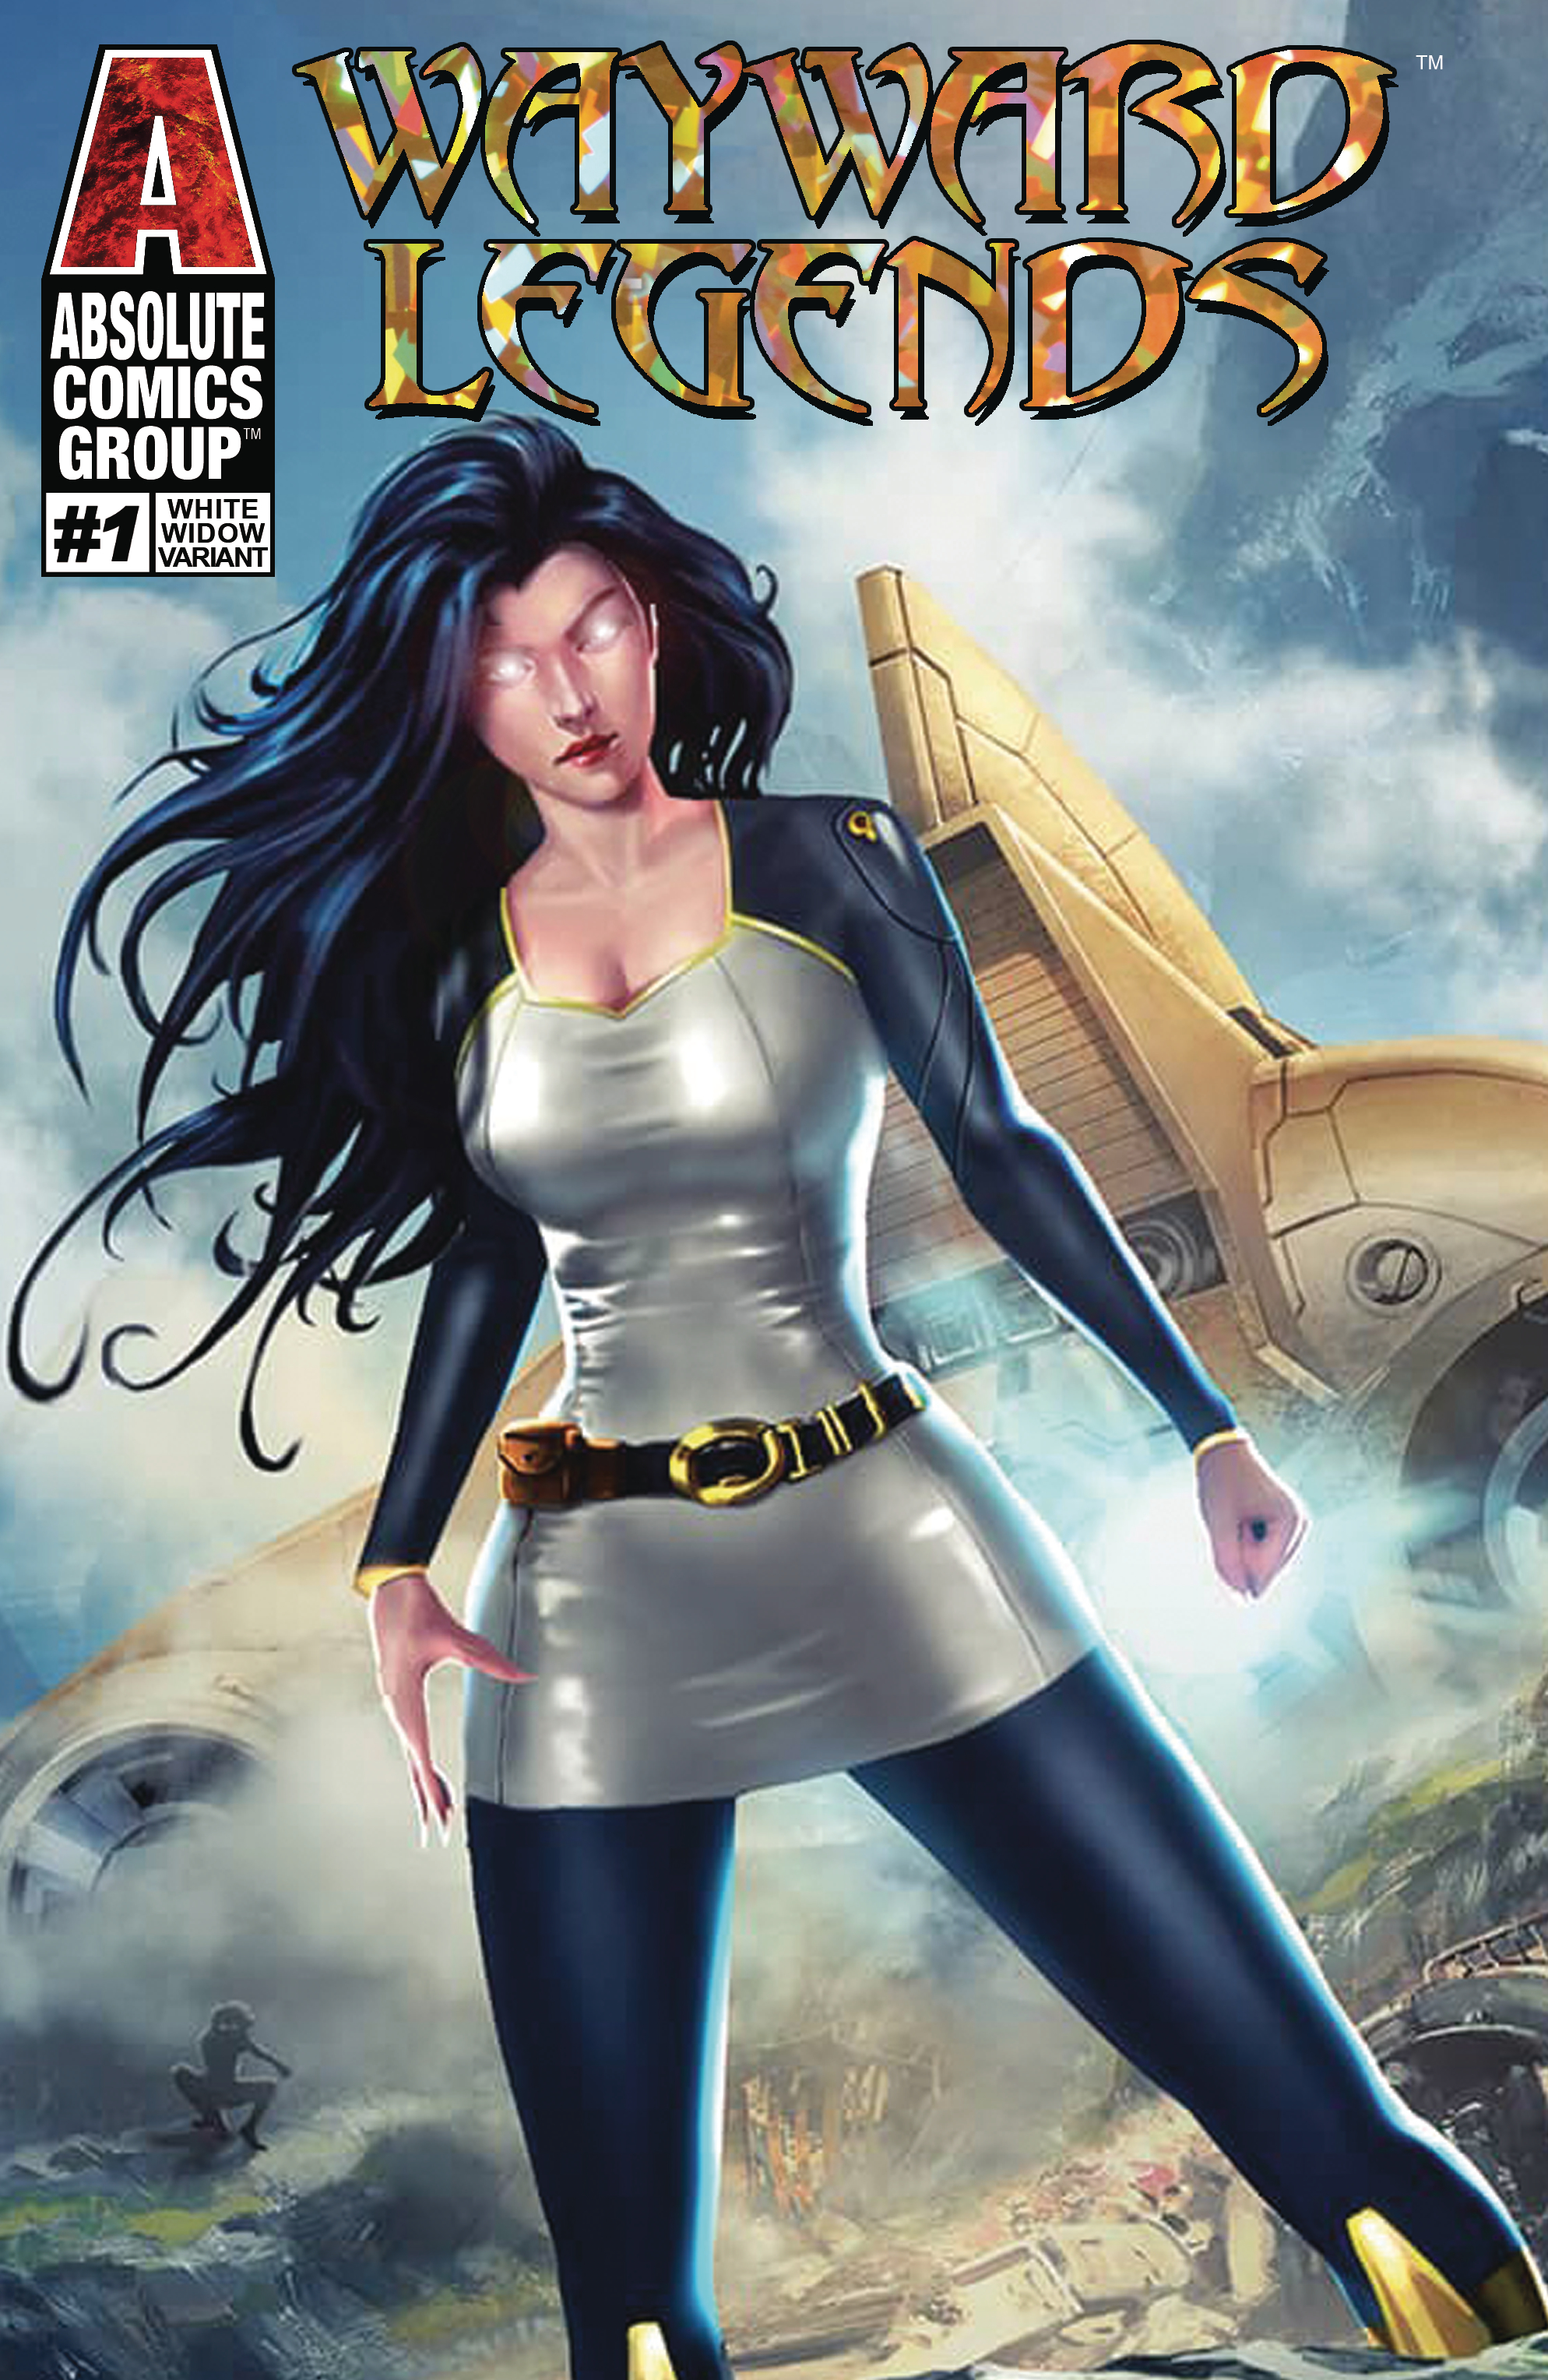 WAYWARD LEGENDS #1 WHITE WIDOW CVR